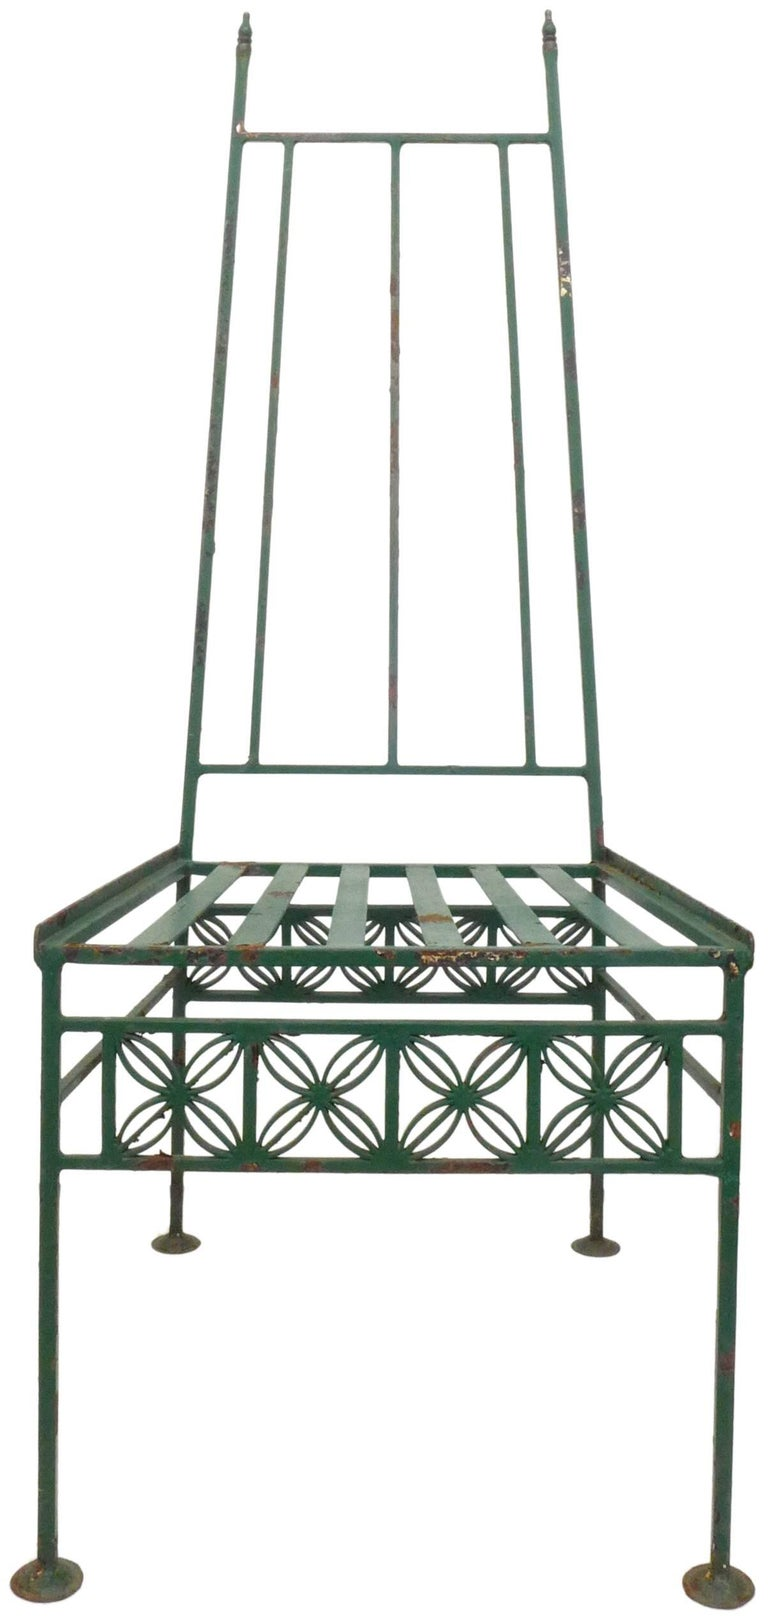 Wrought Iron and Glass Dining Set In Good Condition For Sale In Los Angeles, CA